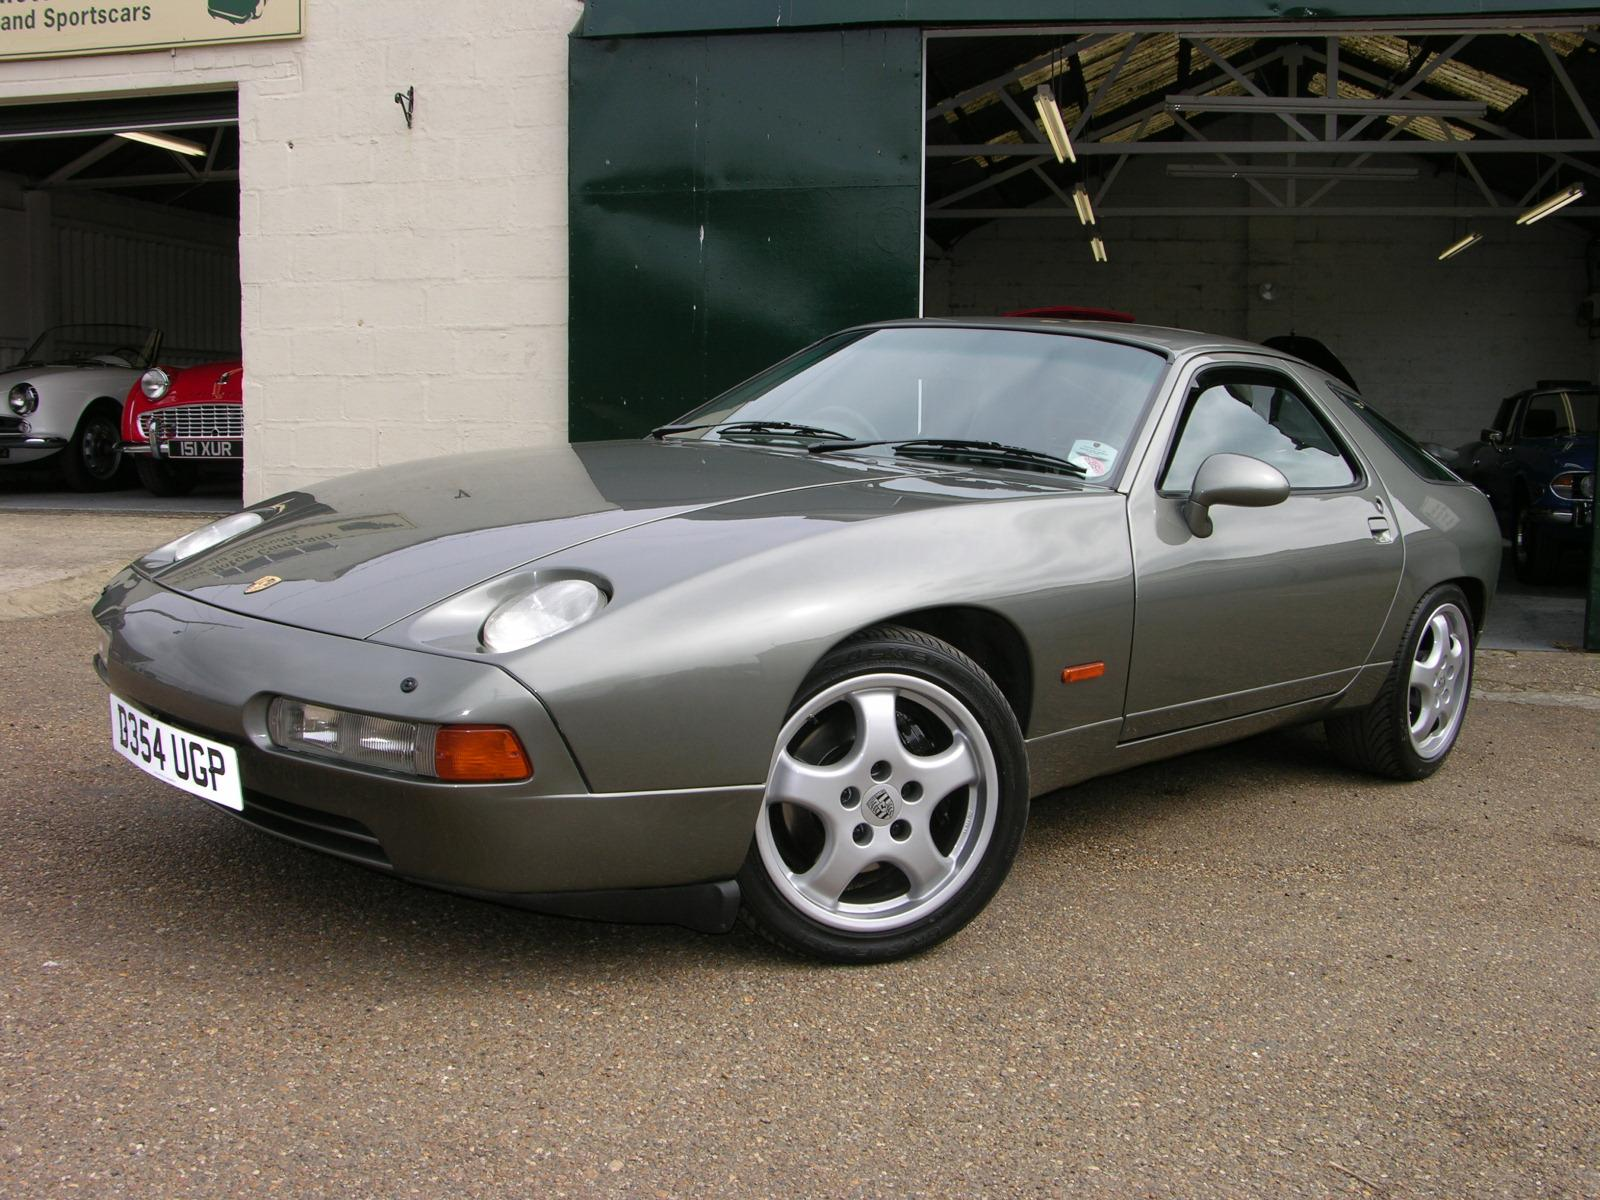 file 1987 porsche 928 s4 flickr the car spy 19 jpg wikimedia commons. Black Bedroom Furniture Sets. Home Design Ideas